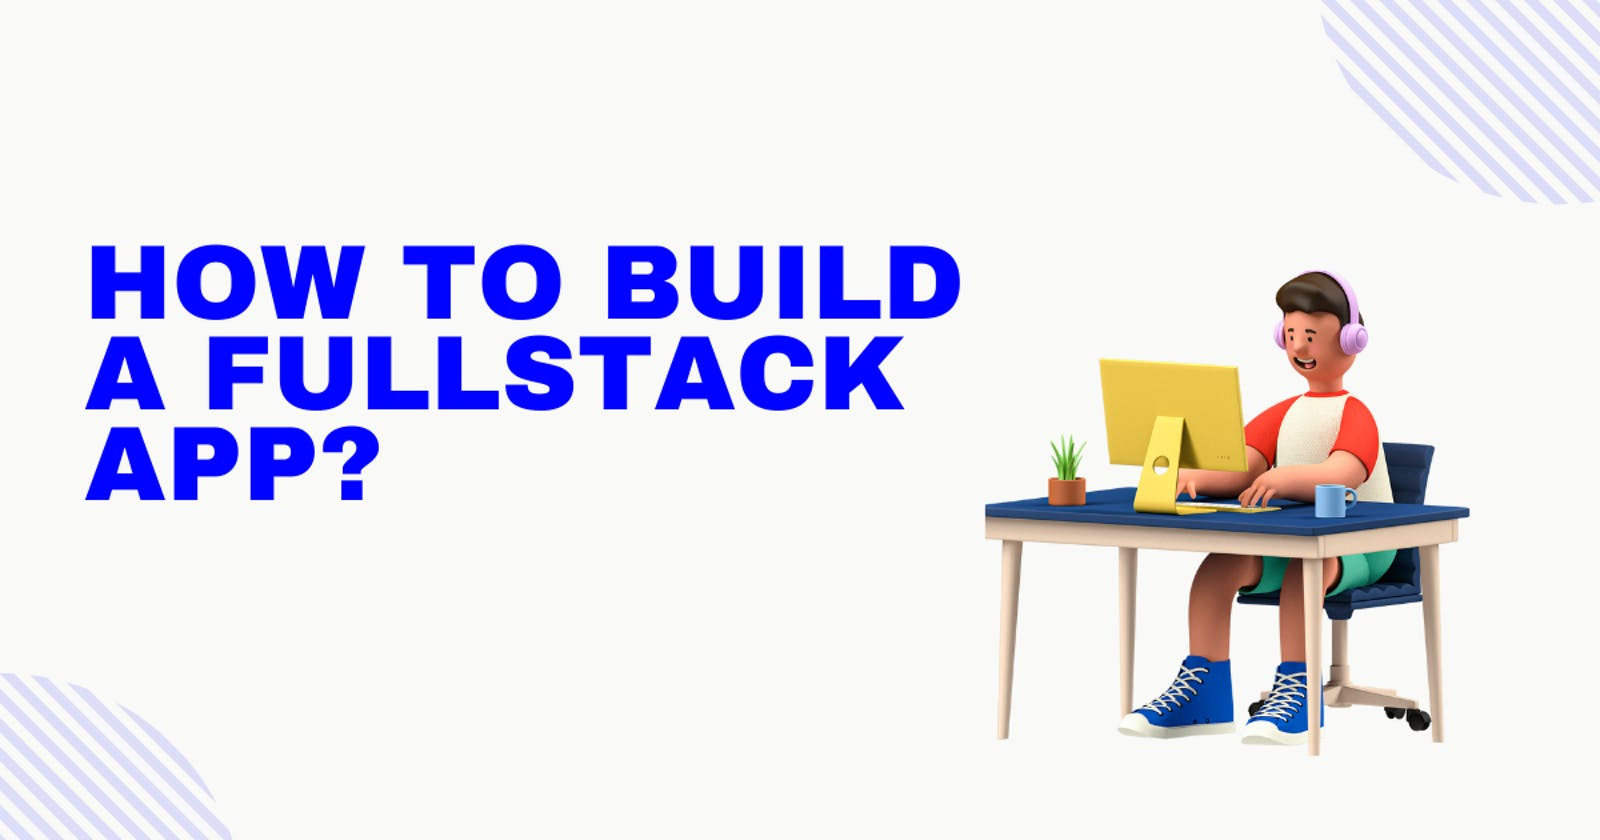 How to build a fullstack app?